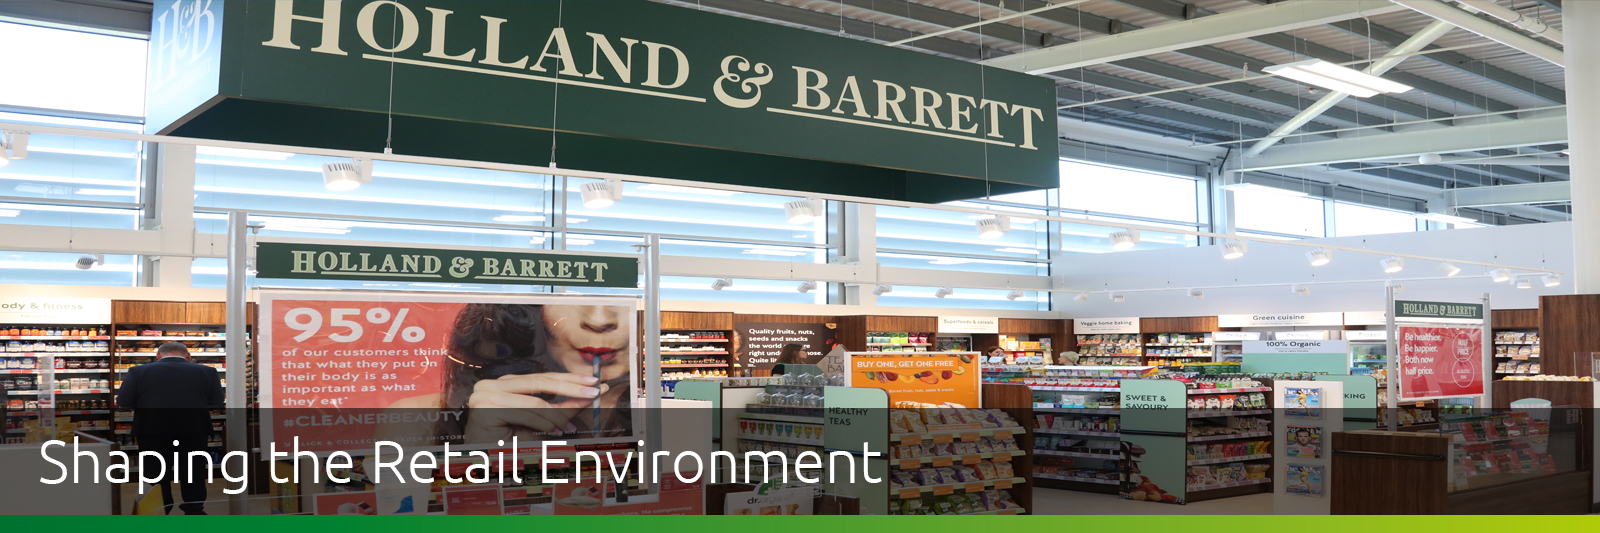 Holland & Barrett Fitout